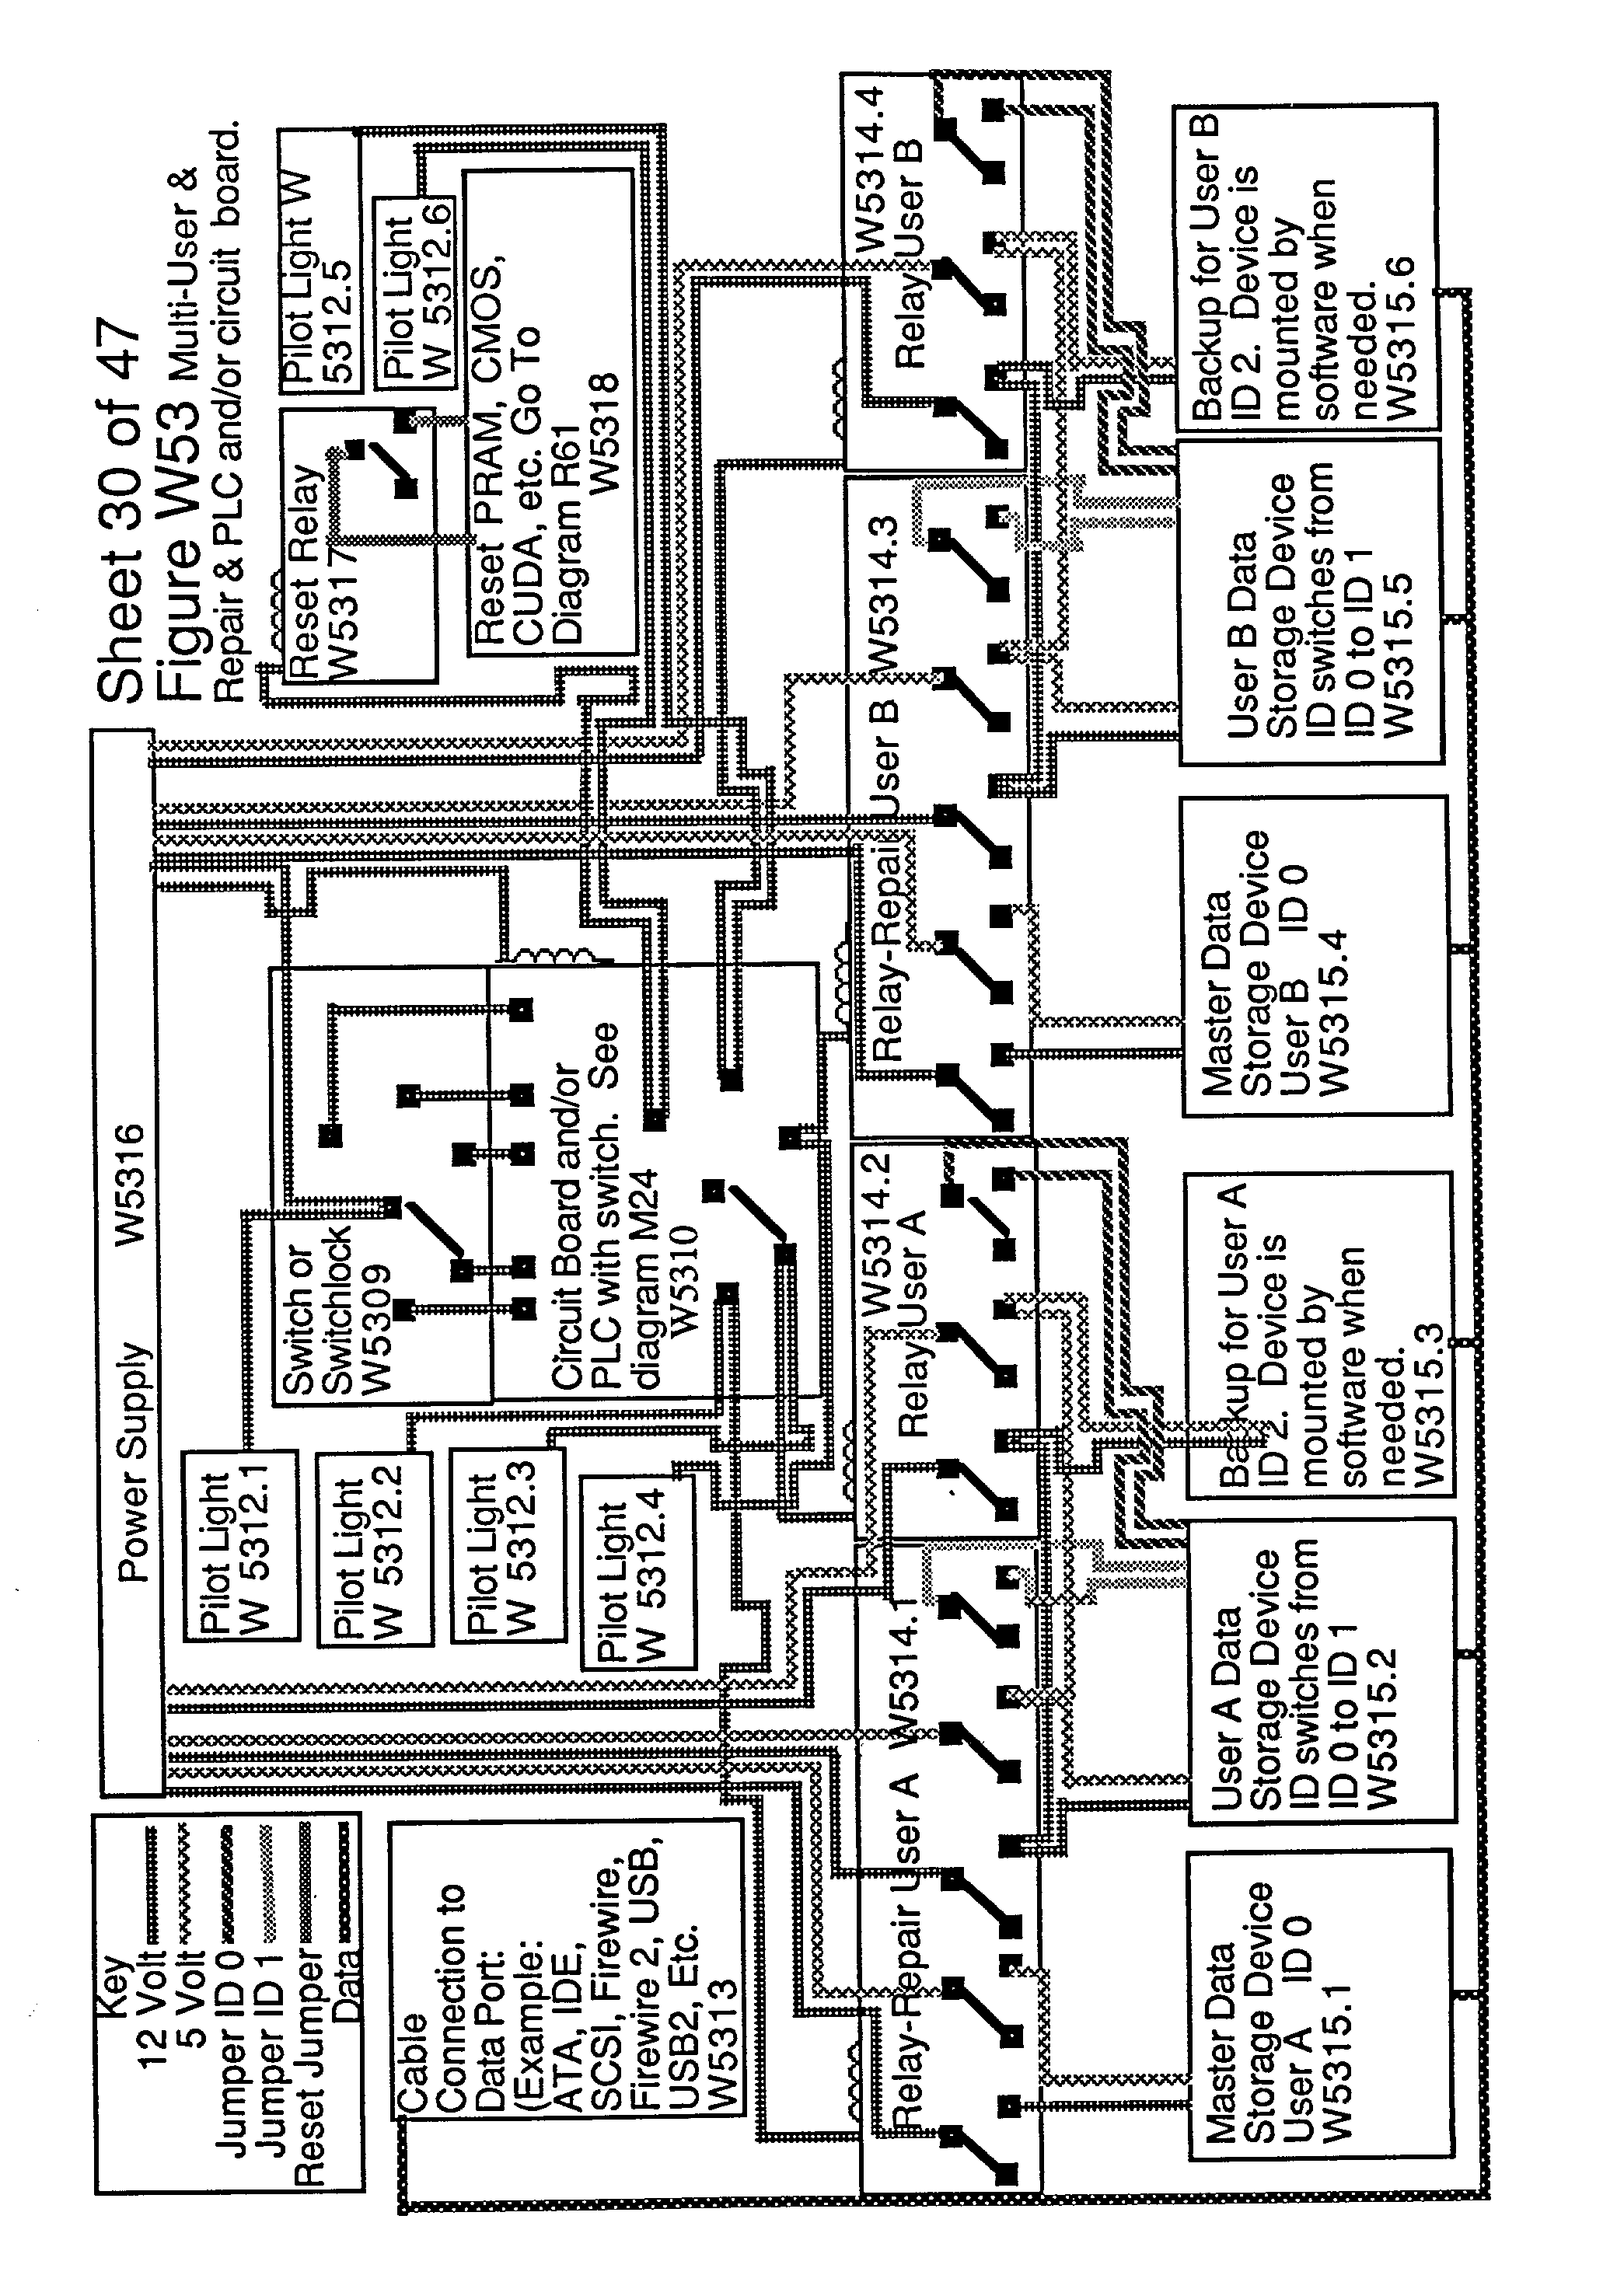 Patent Us20020188887 Computer With Switchable Components Google Firewire Diagram Figure Us20020188887a1 20021212 P00081